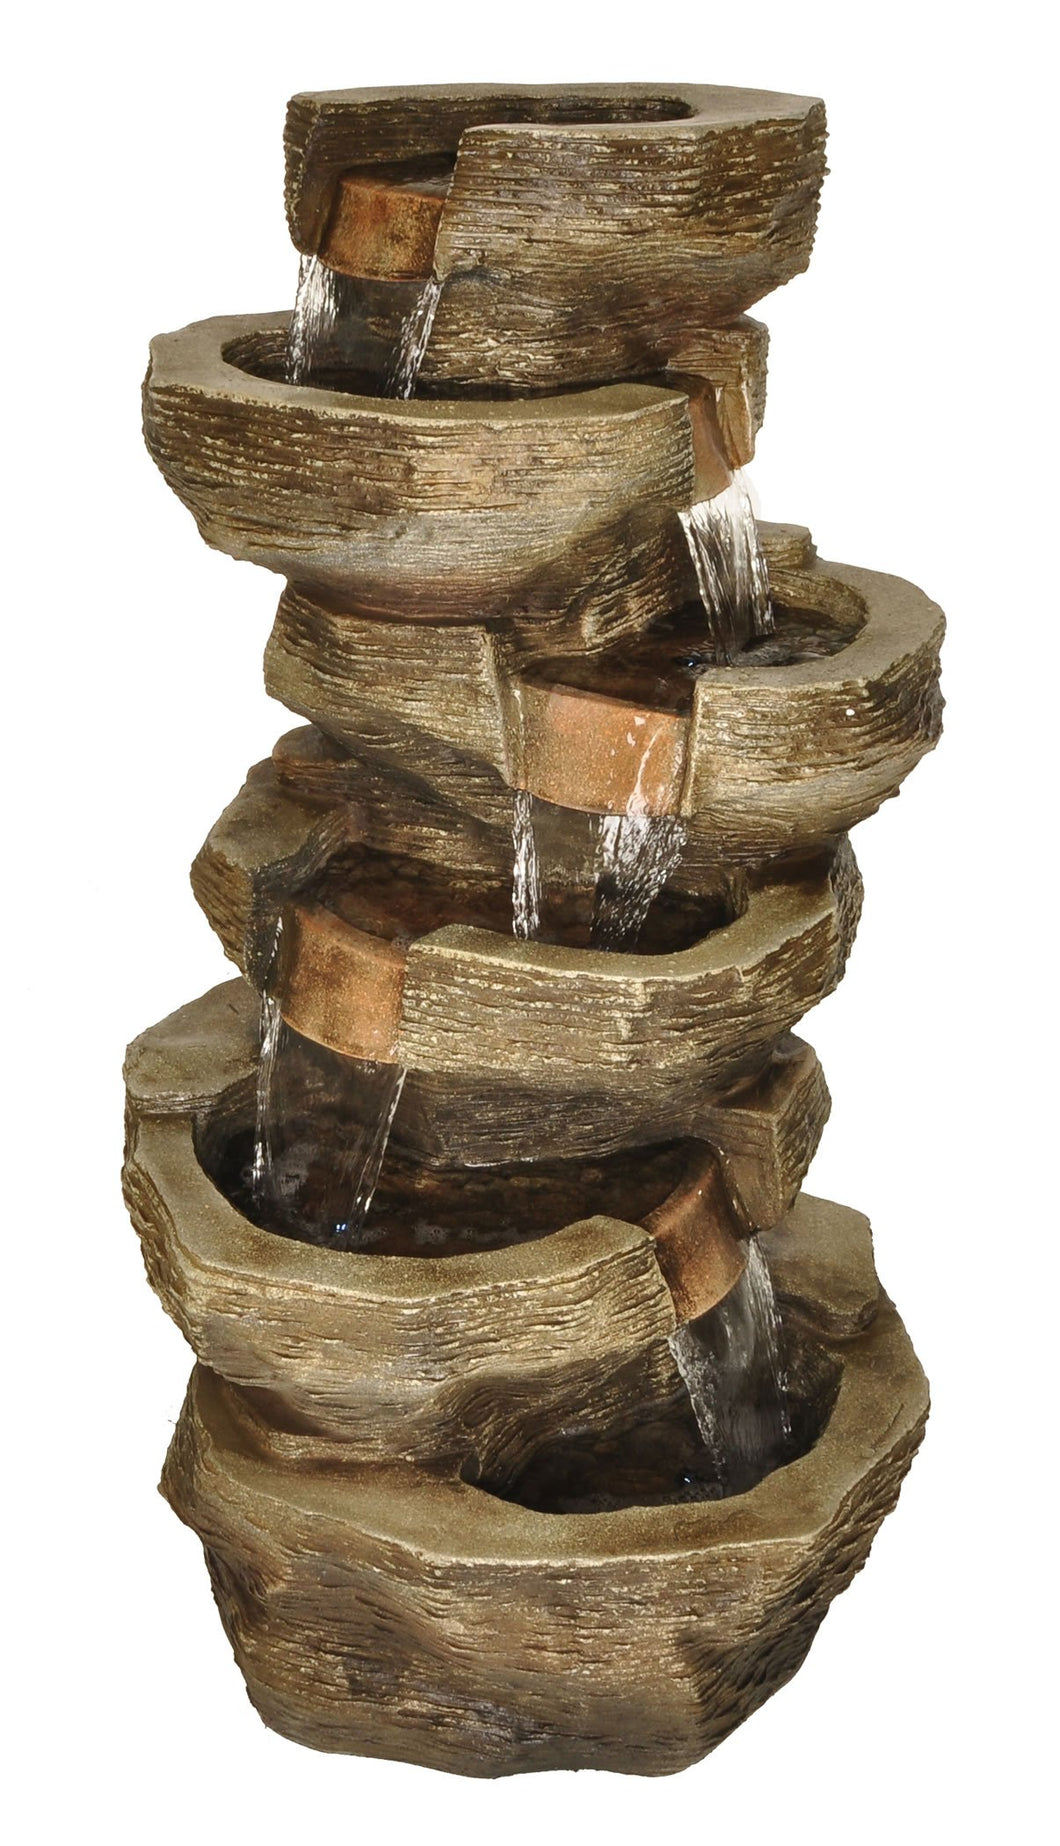 Zenvida Tiered Rock Waterfall Outdoor Garden Fountain 39